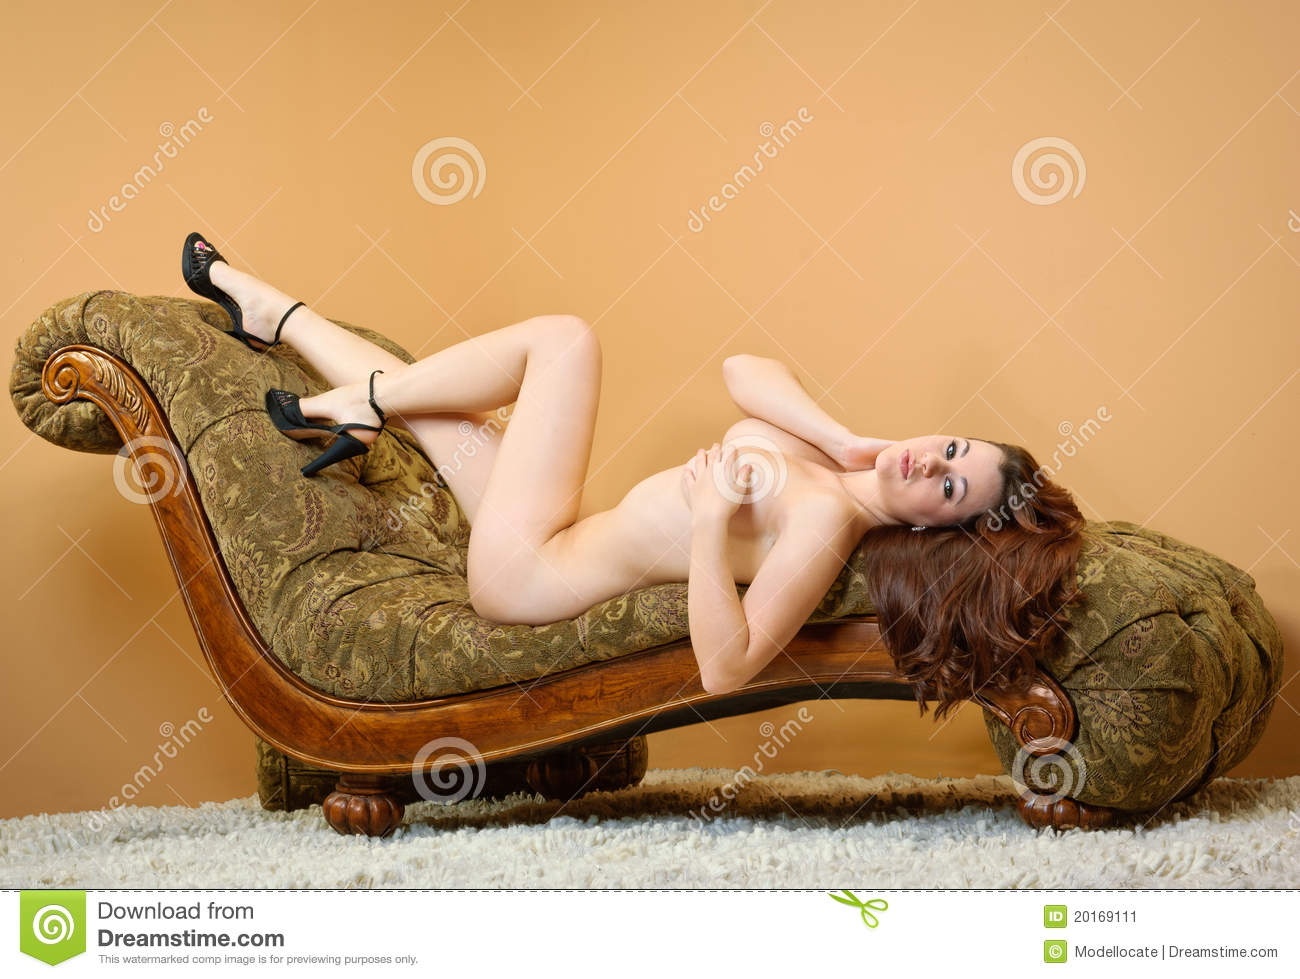 Stock Image Nude Woman Laying On Couch